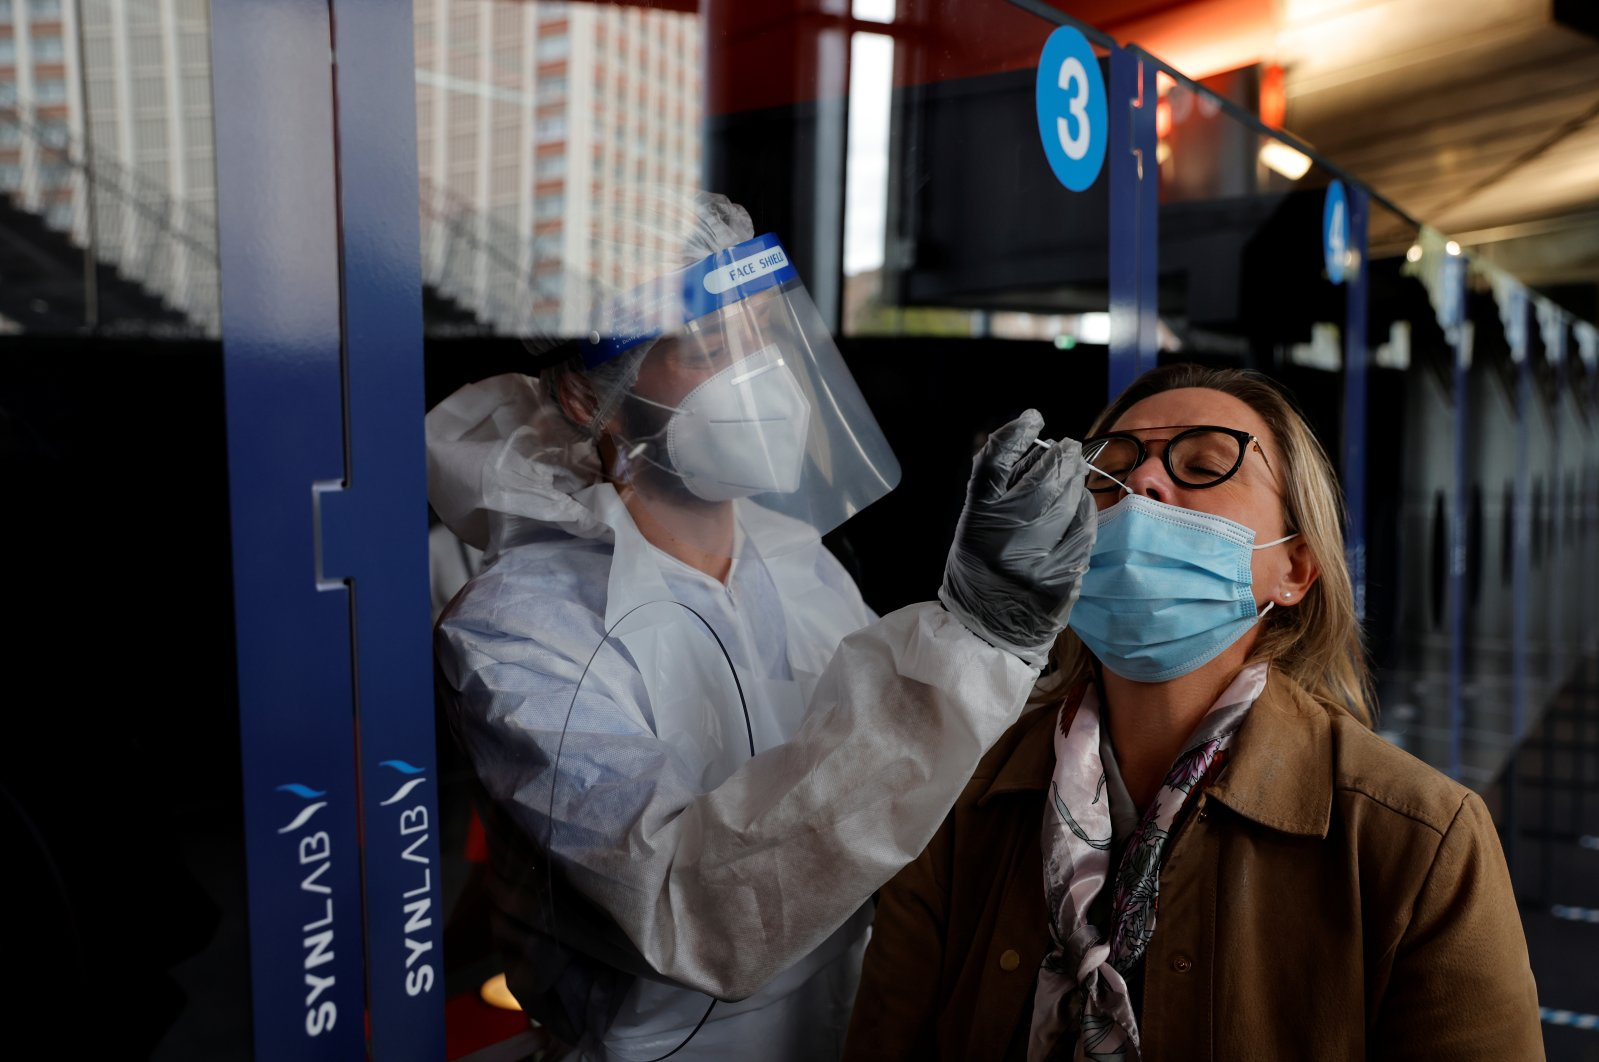 A health worker, wearing a protective suit and a face mask, administers a nasal swab to a patient in a temporary testing site for the coronavirus disease (COVID-19) at the Zenith Arena in Lille, France, October 15, 2020.  (Reuters Photo)